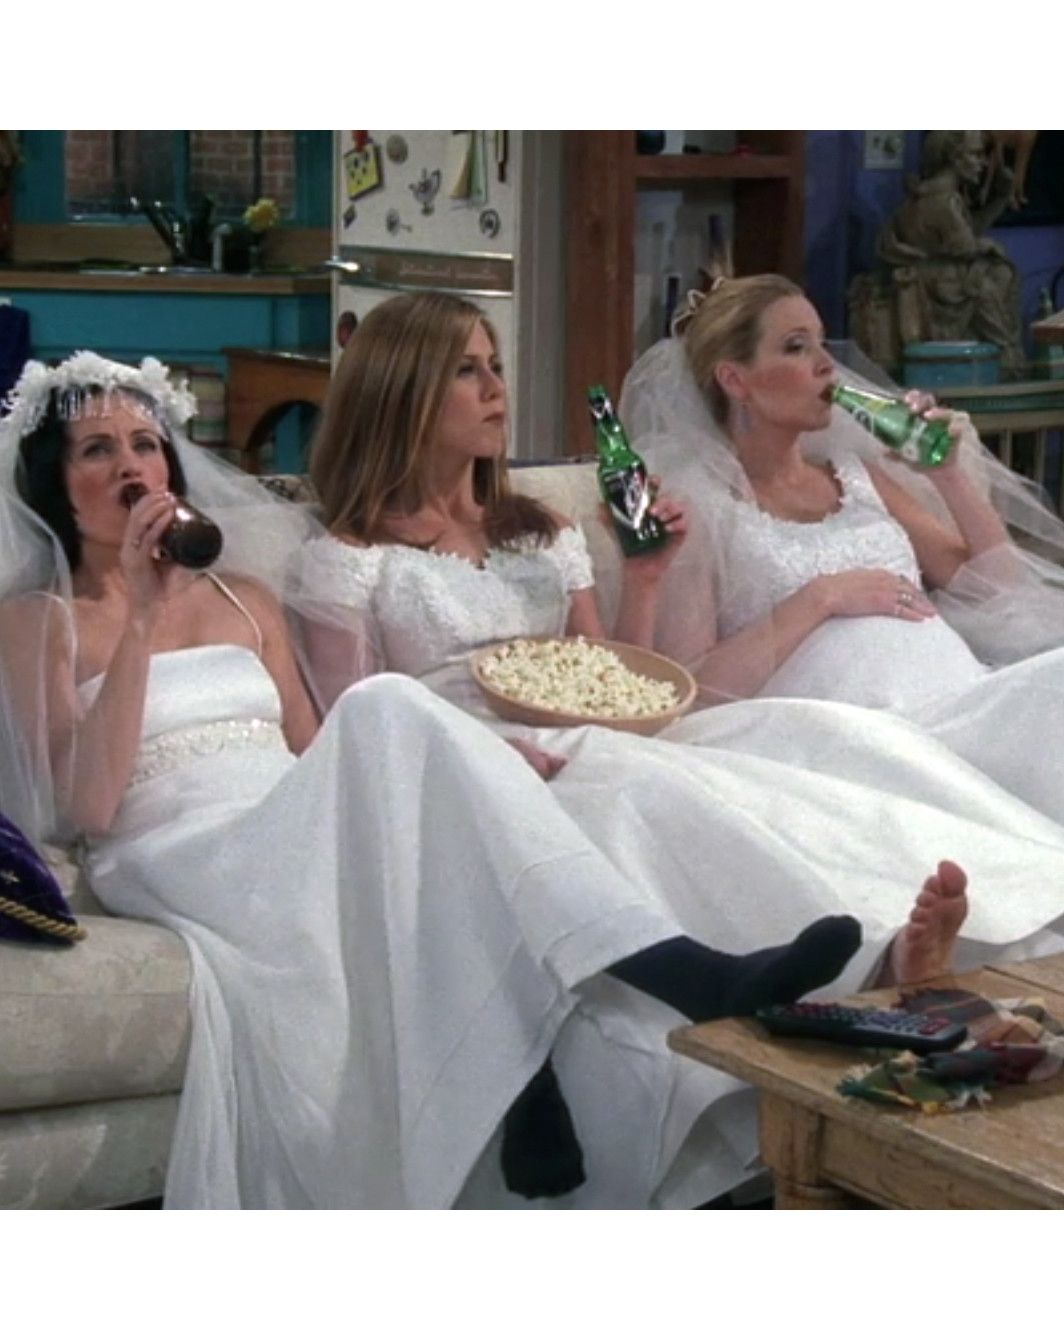 Iconic Tv Wedding Dresses That Stole The Show Tv Weddings Wedding Dresses Wedding Outfit [ 1329 x 1064 Pixel ]